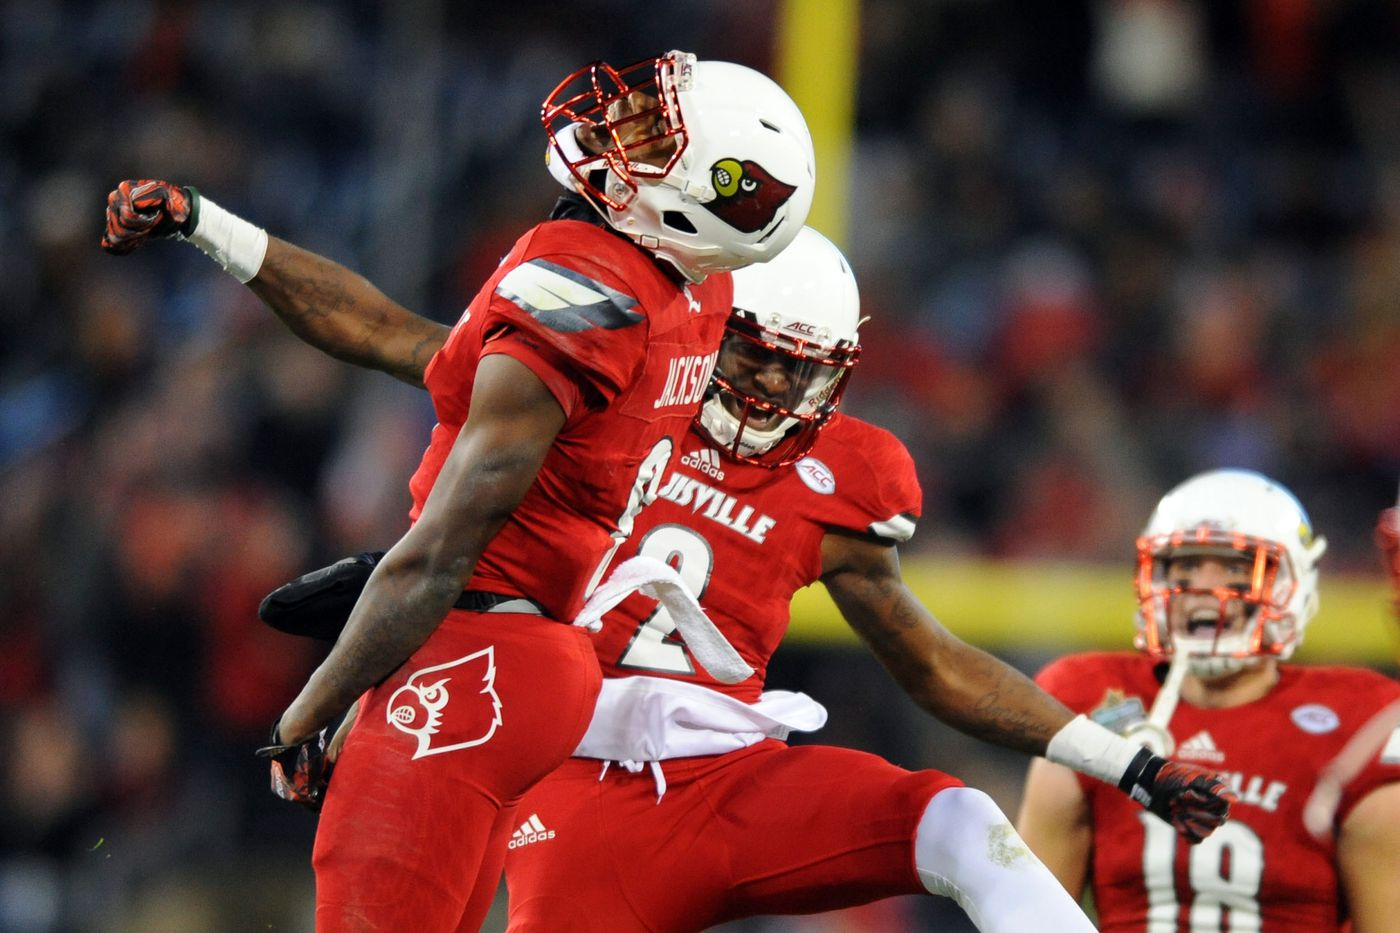 Louisville football's going to be volatile, dangerous, and all sorts of ...